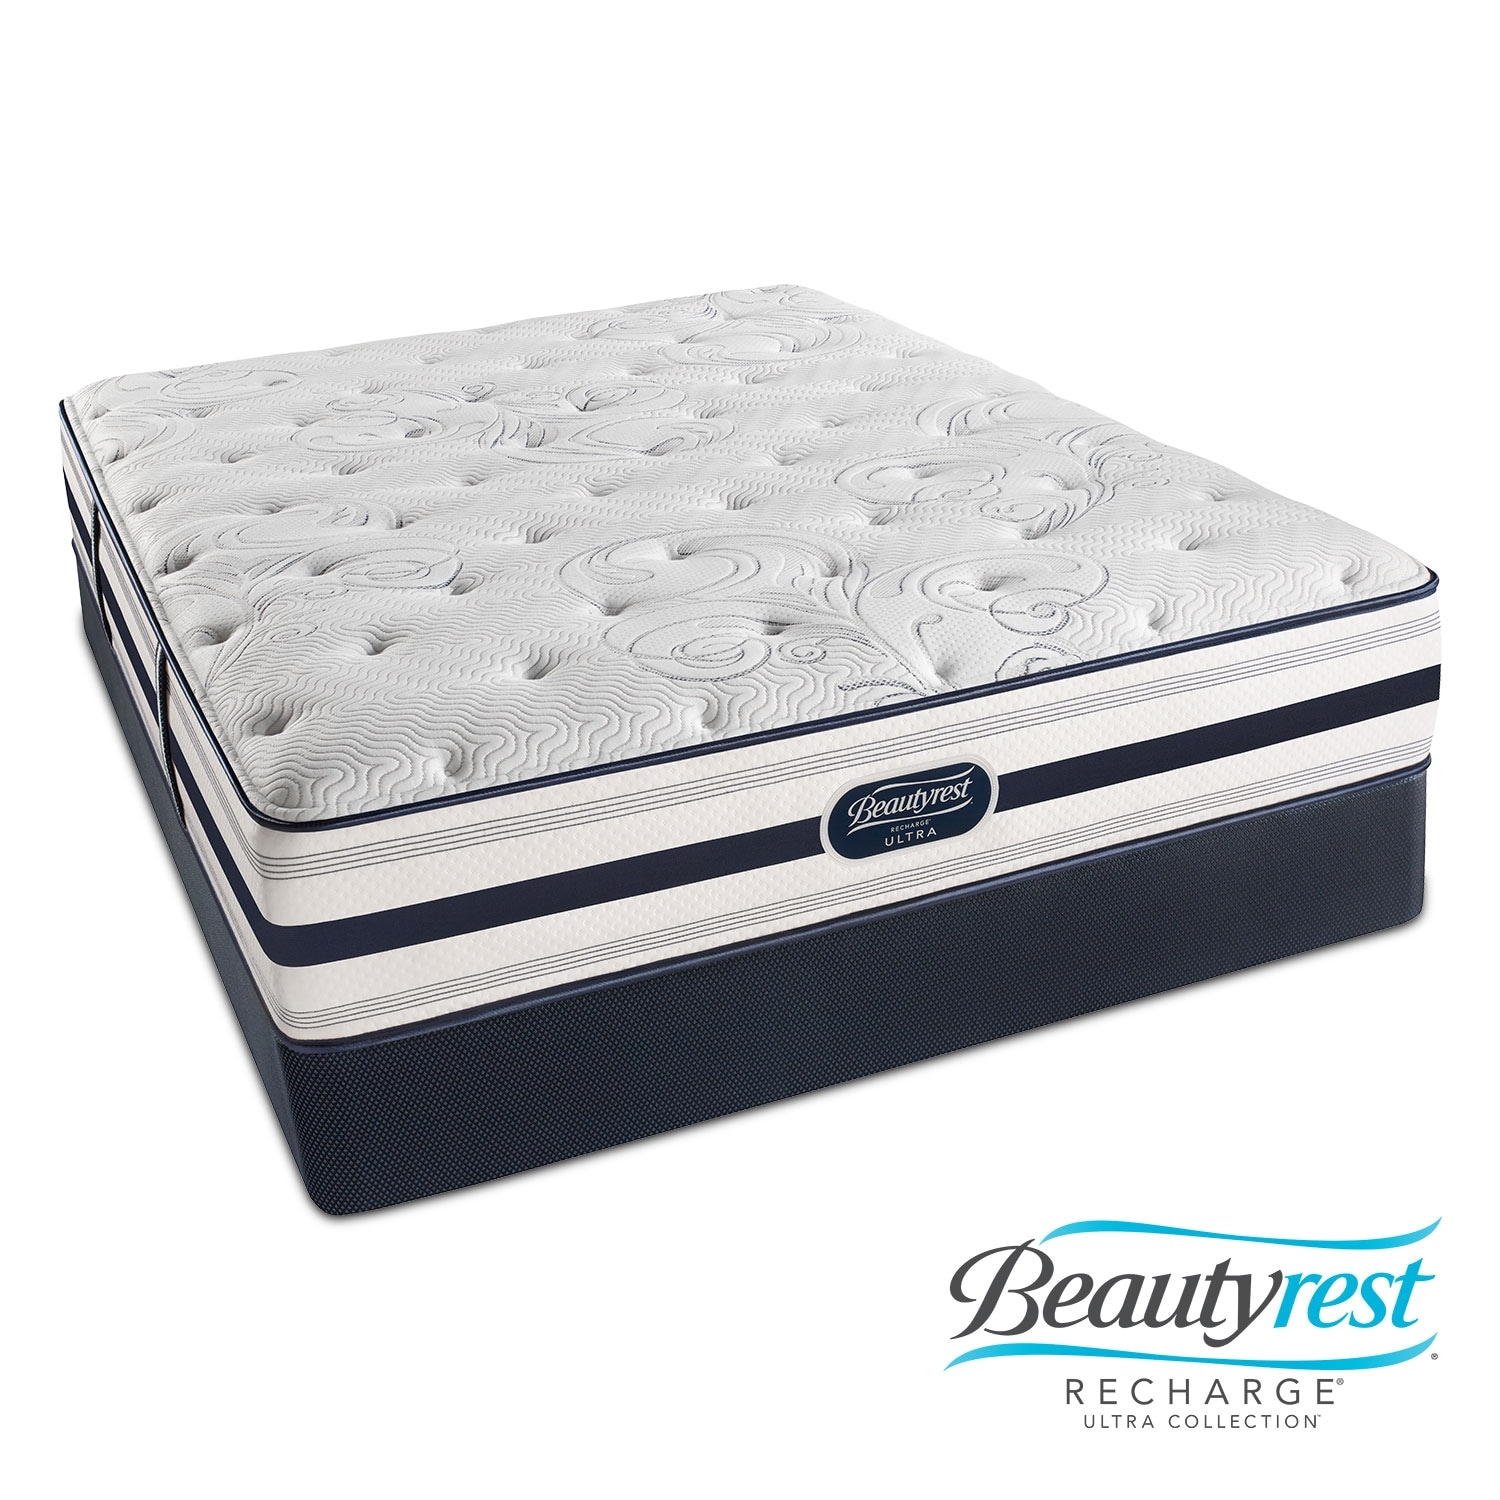 Mattresses and Bedding - Cerise Plush Queen Mattress/Split Foundation Set